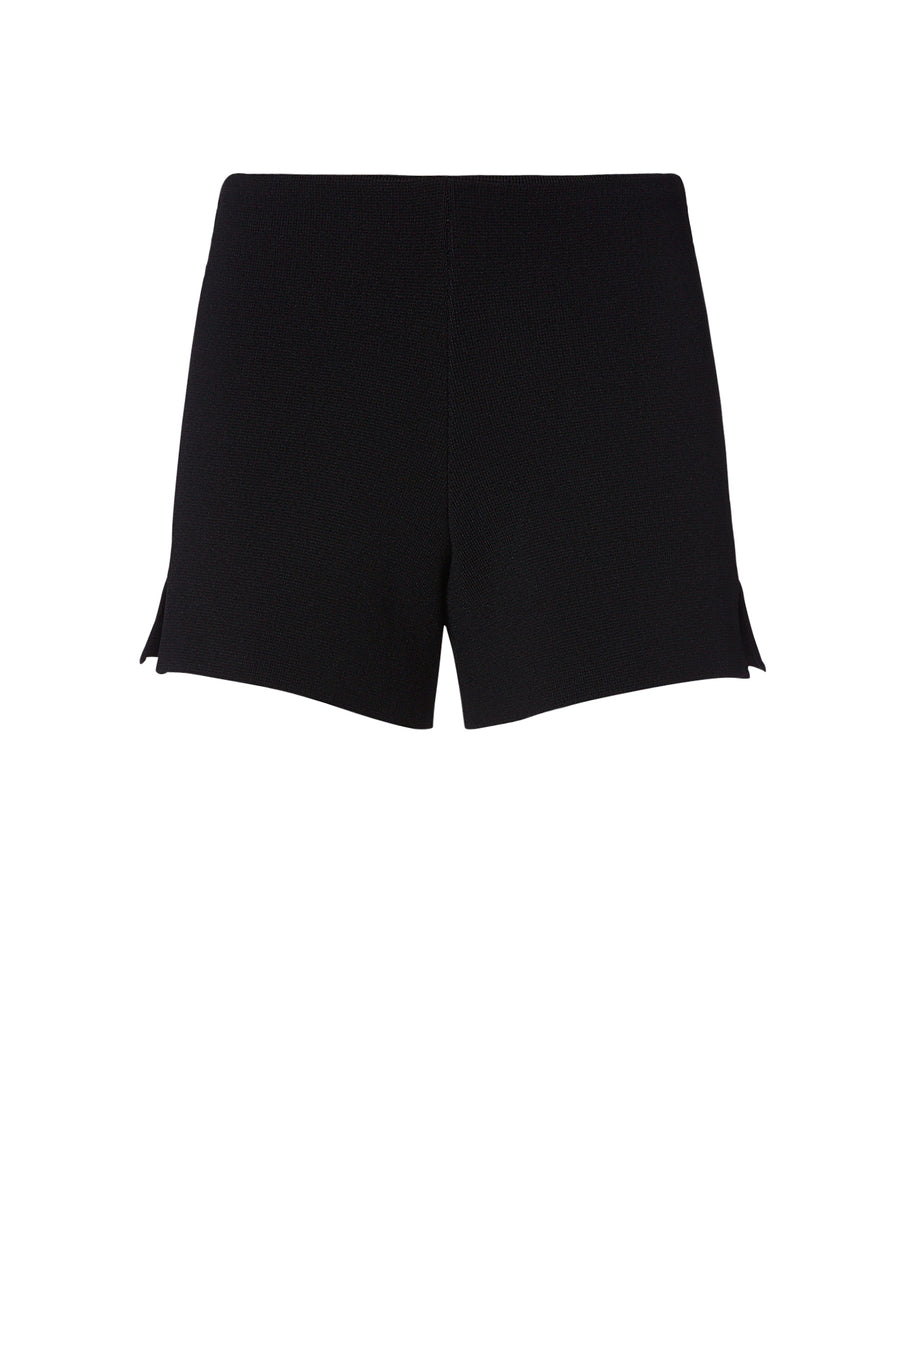 CREPE KNIT VENT SHORT BLACK, BLACK color